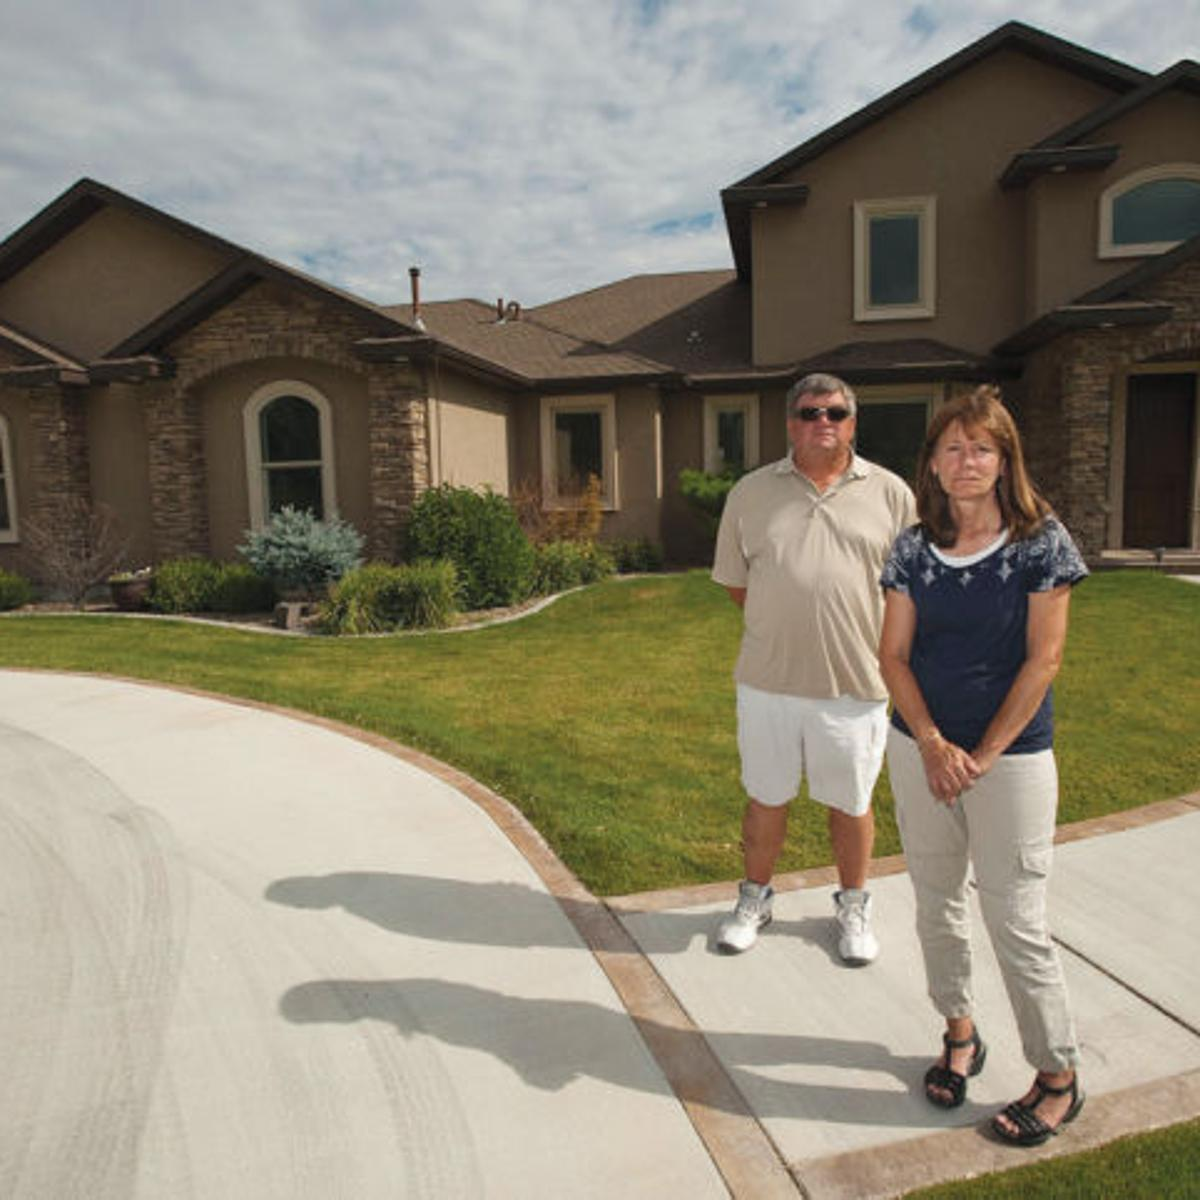 Misplaced Home: LeBaron Homes in Twin Falls faces $500,000